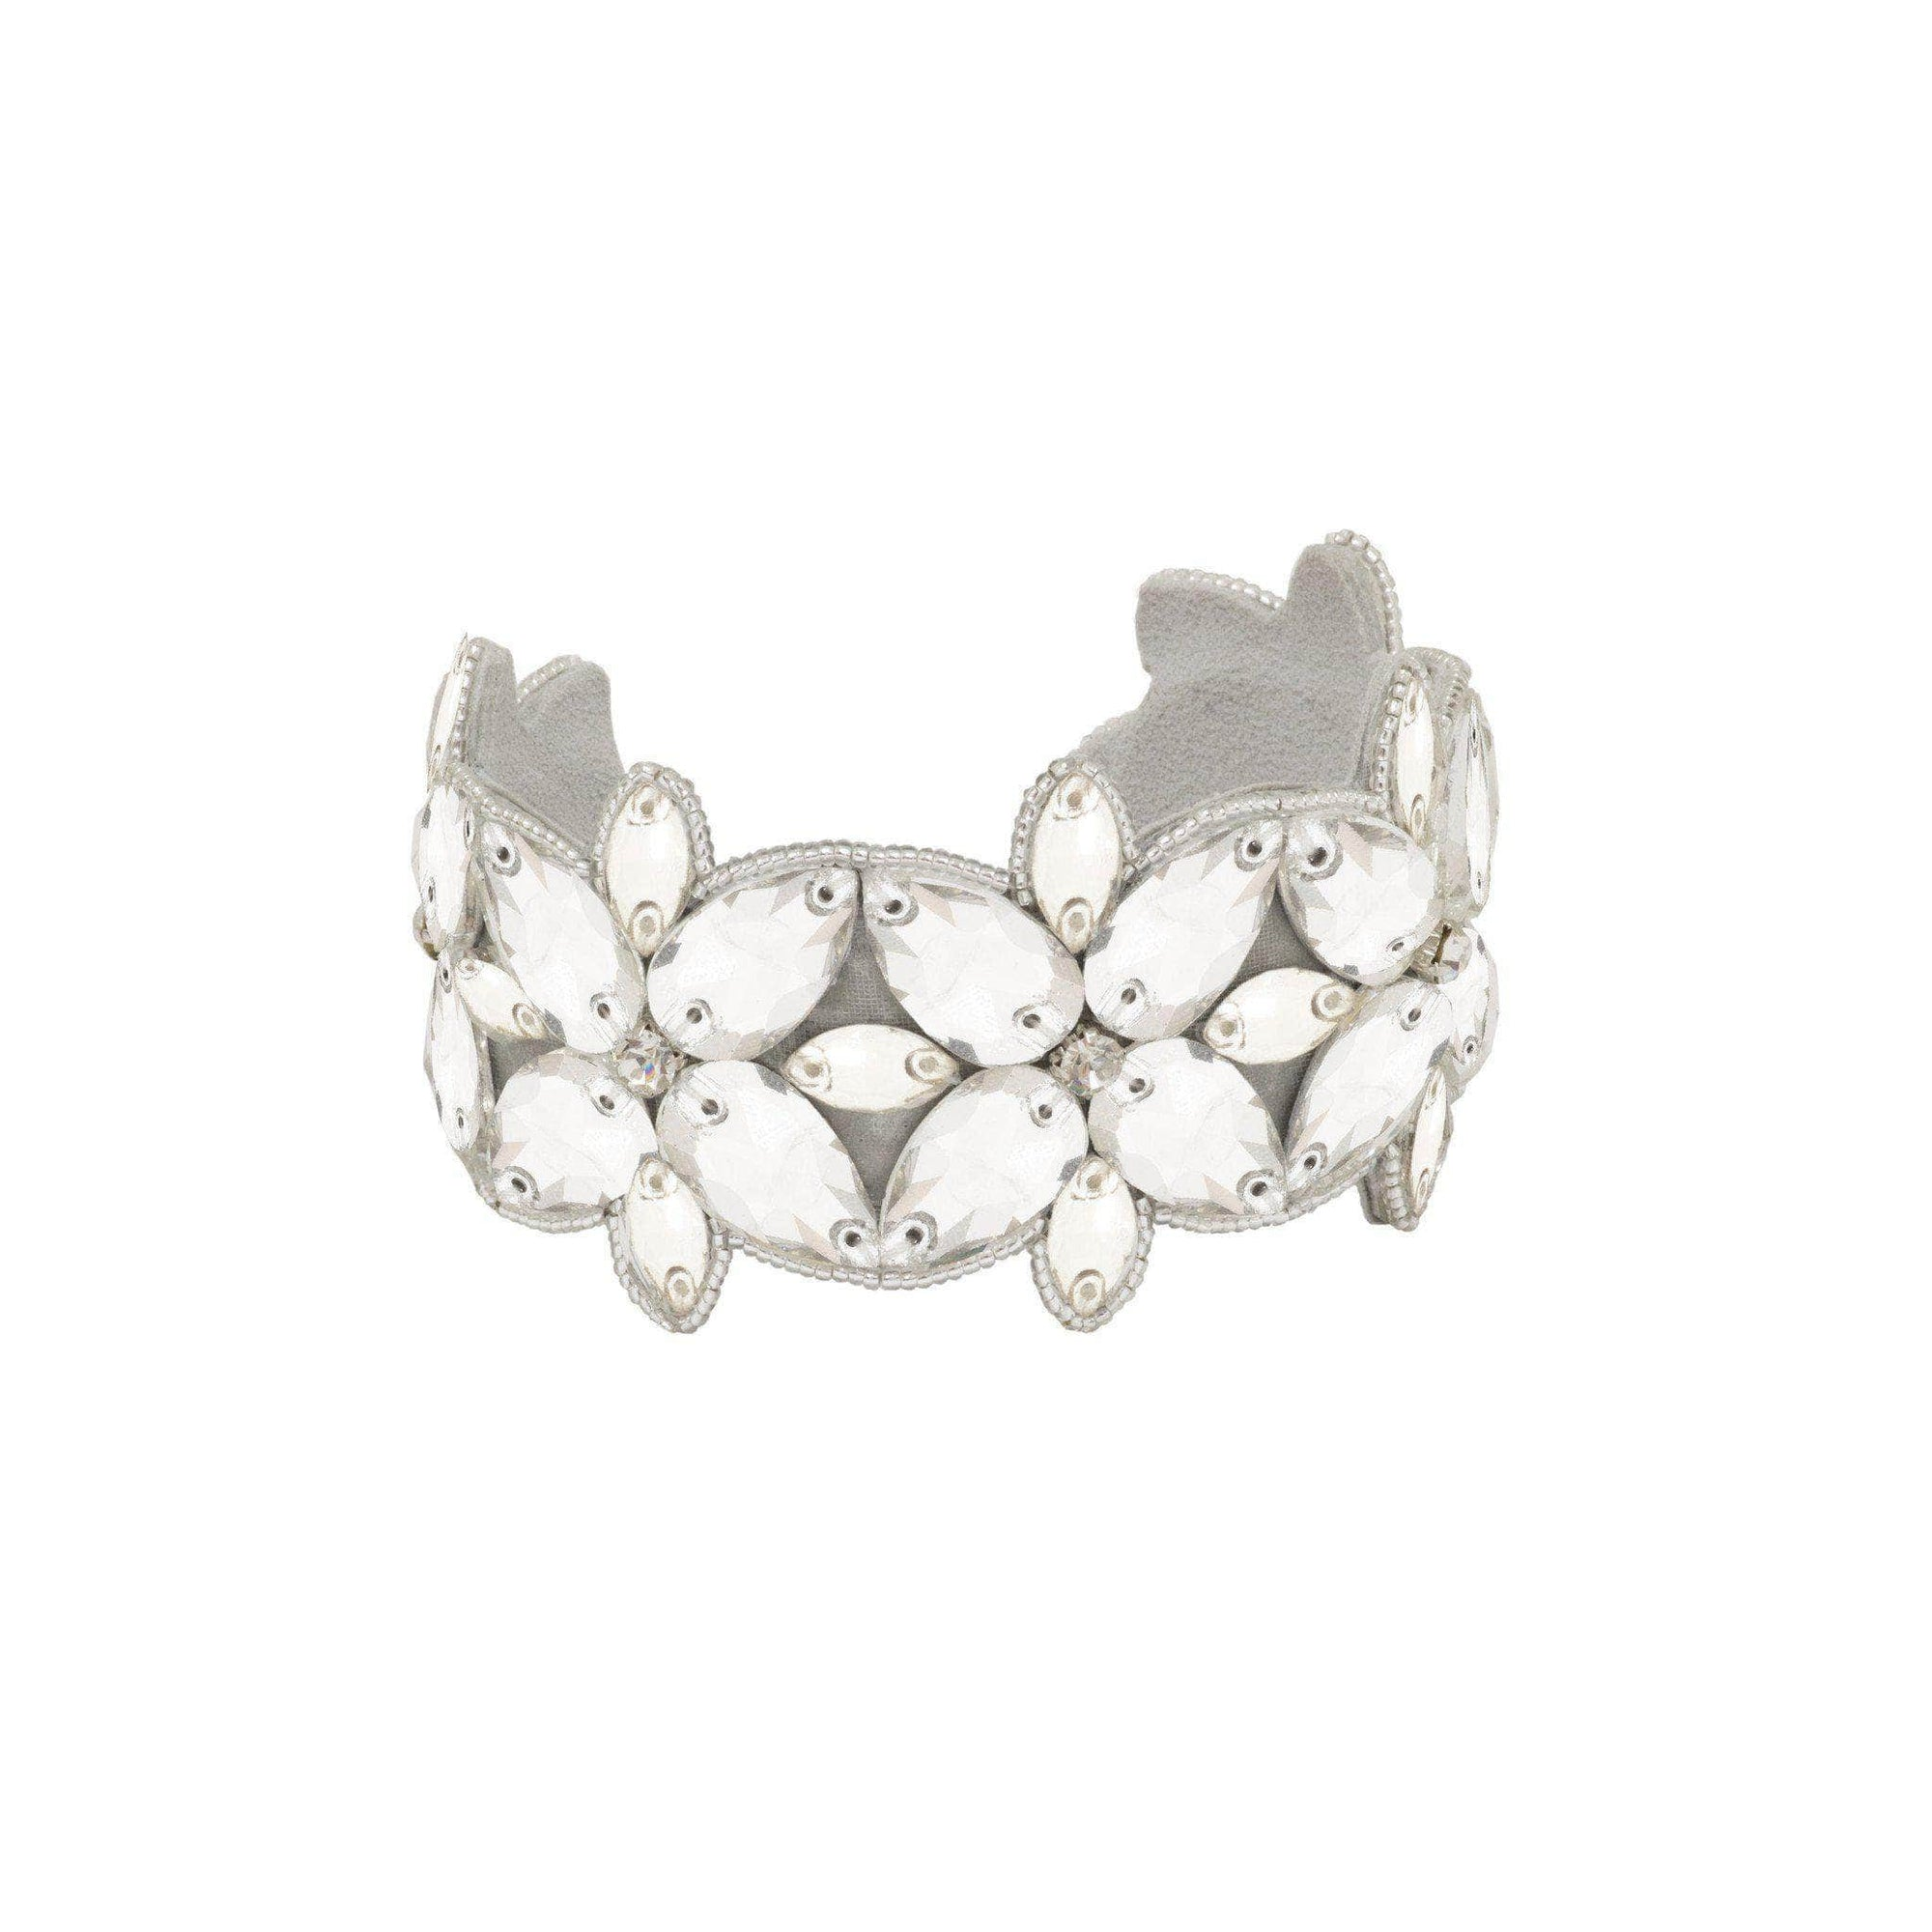 Wedding Cuff Silver Crystal wedding cuff - 'Mira'